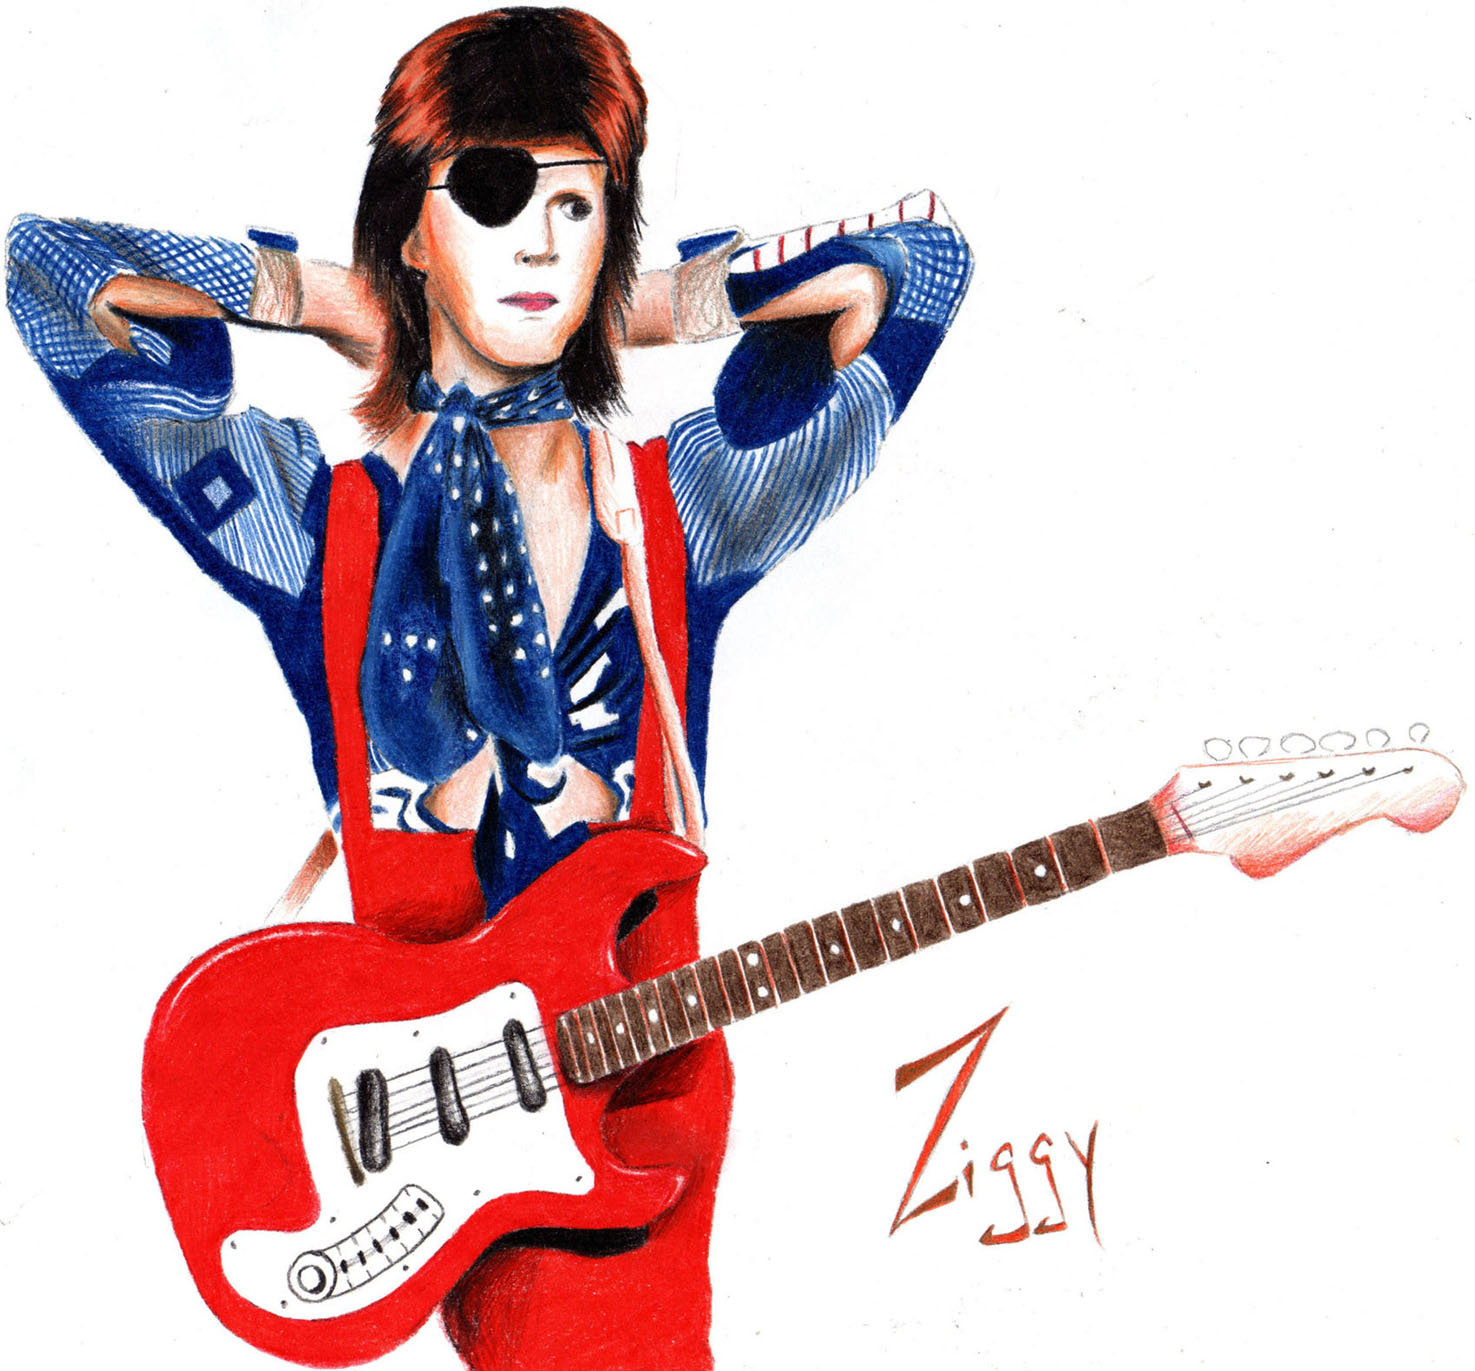 Ziggy by AeroArtist